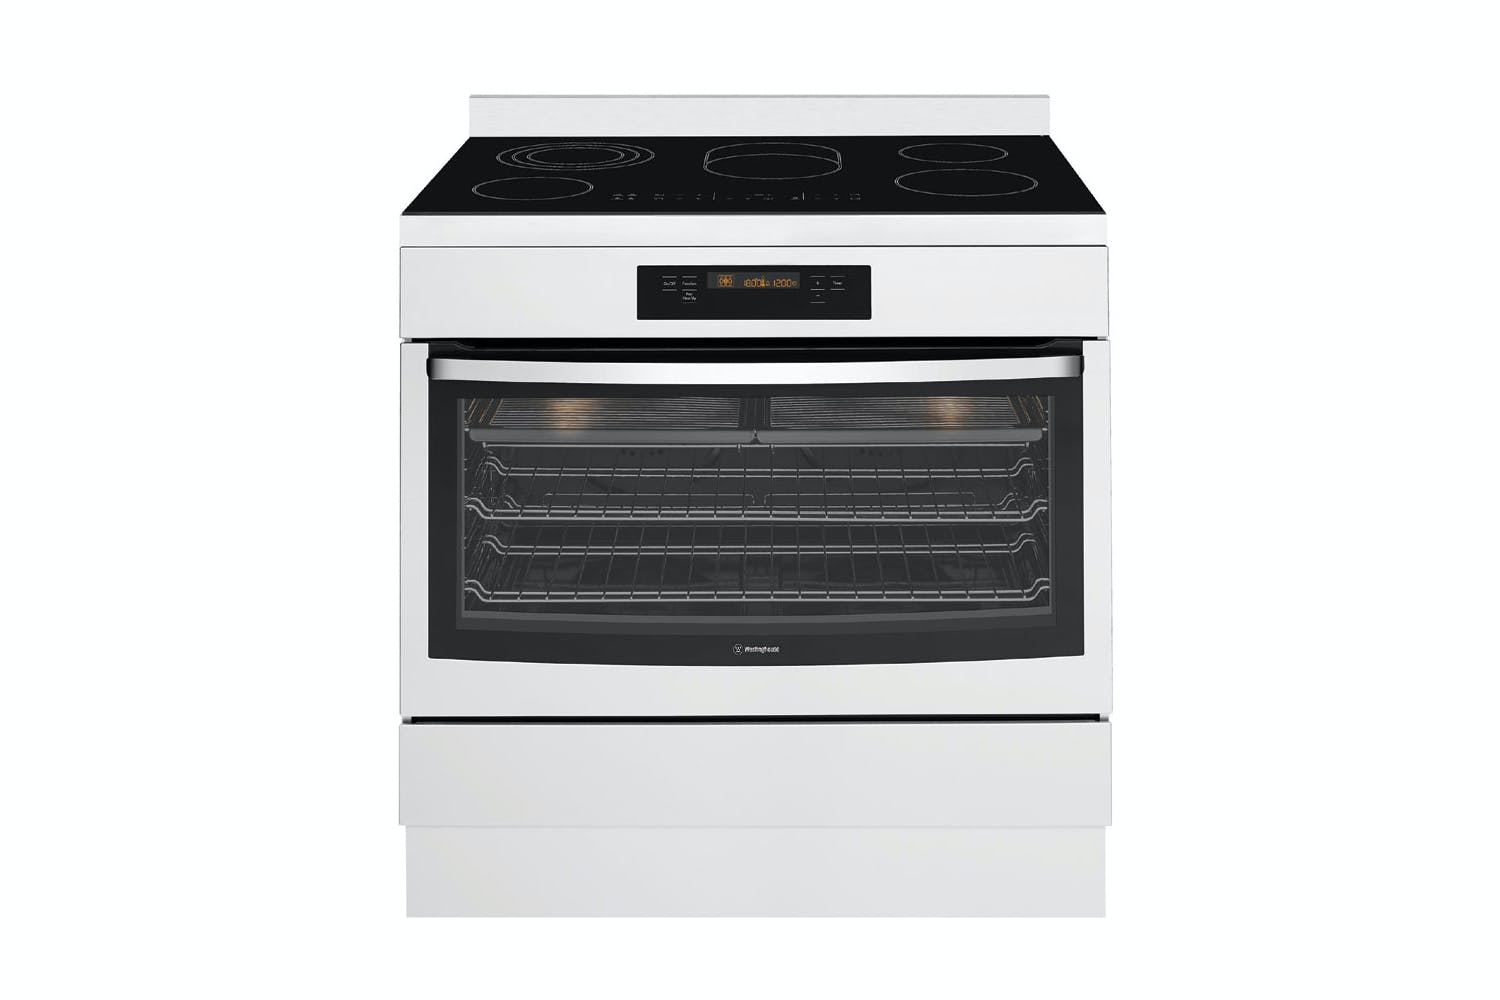 Westinghouse 90cm freestanding oven with ceramic cooktop harvey norman new zealand - Westinghouse and living ...